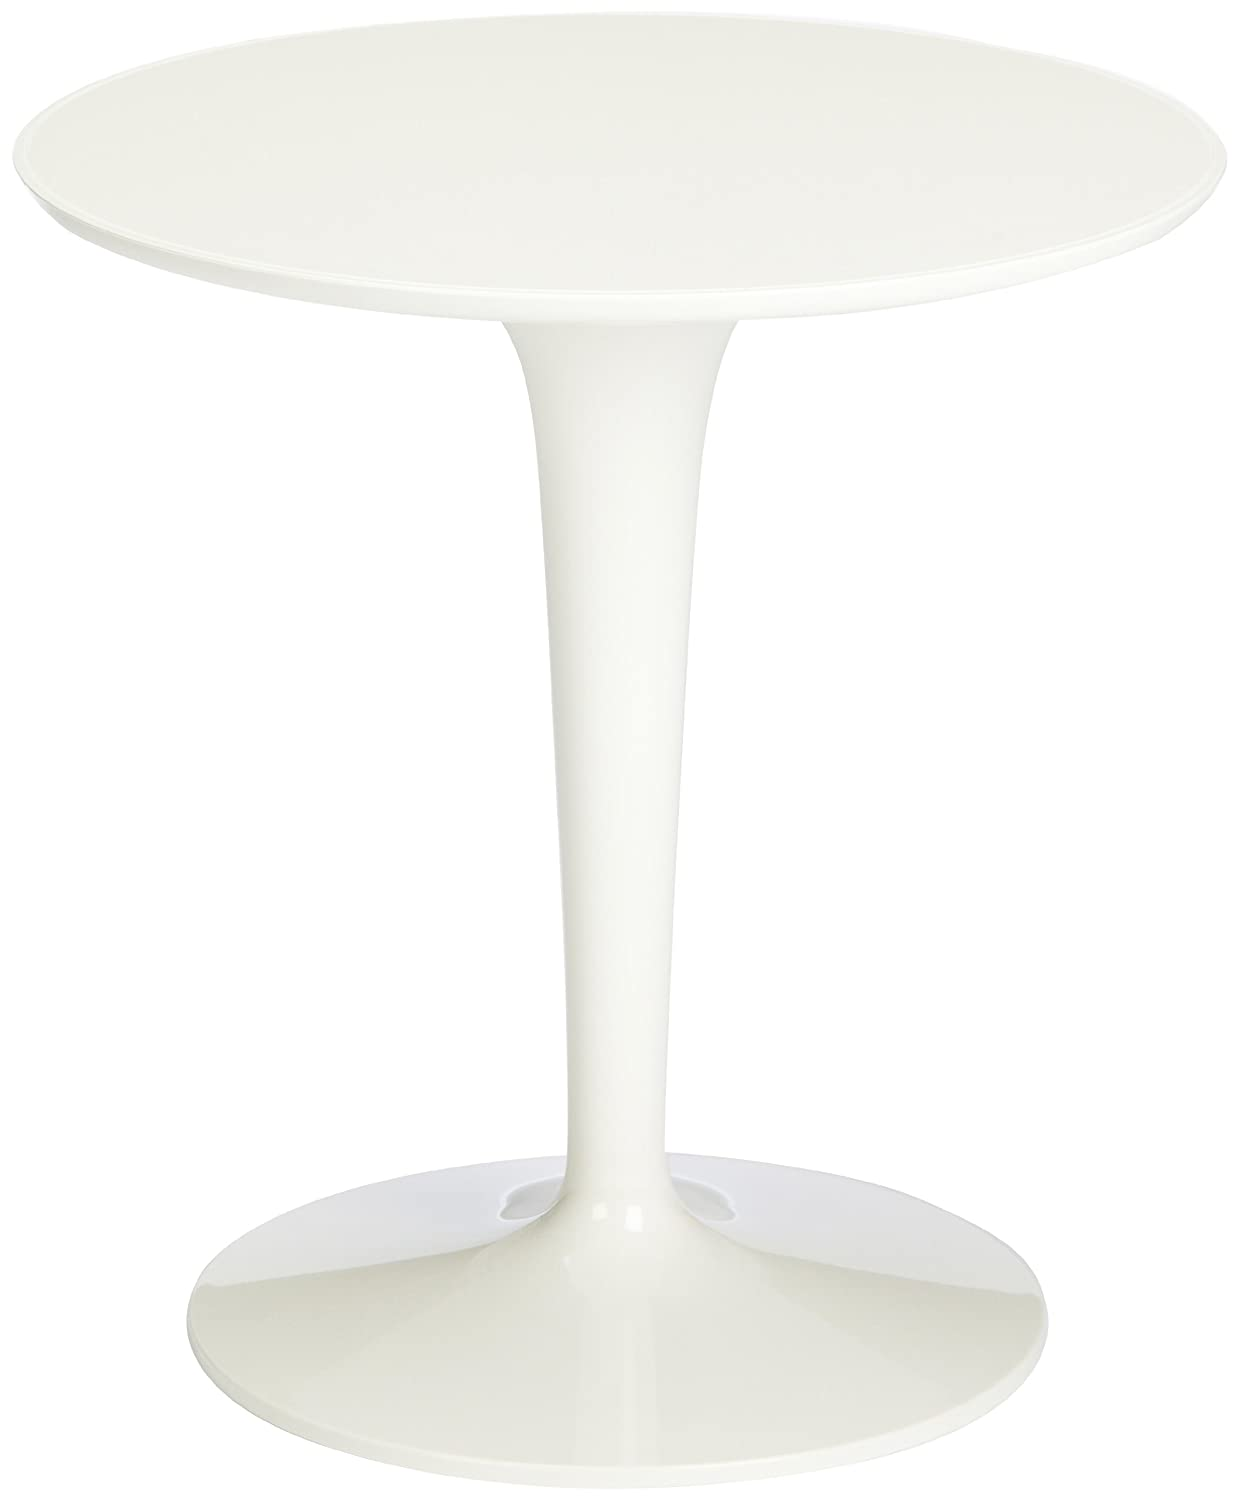 Kartell 8600/03 Tip Top Side Table Tavolino, Bianco 860003